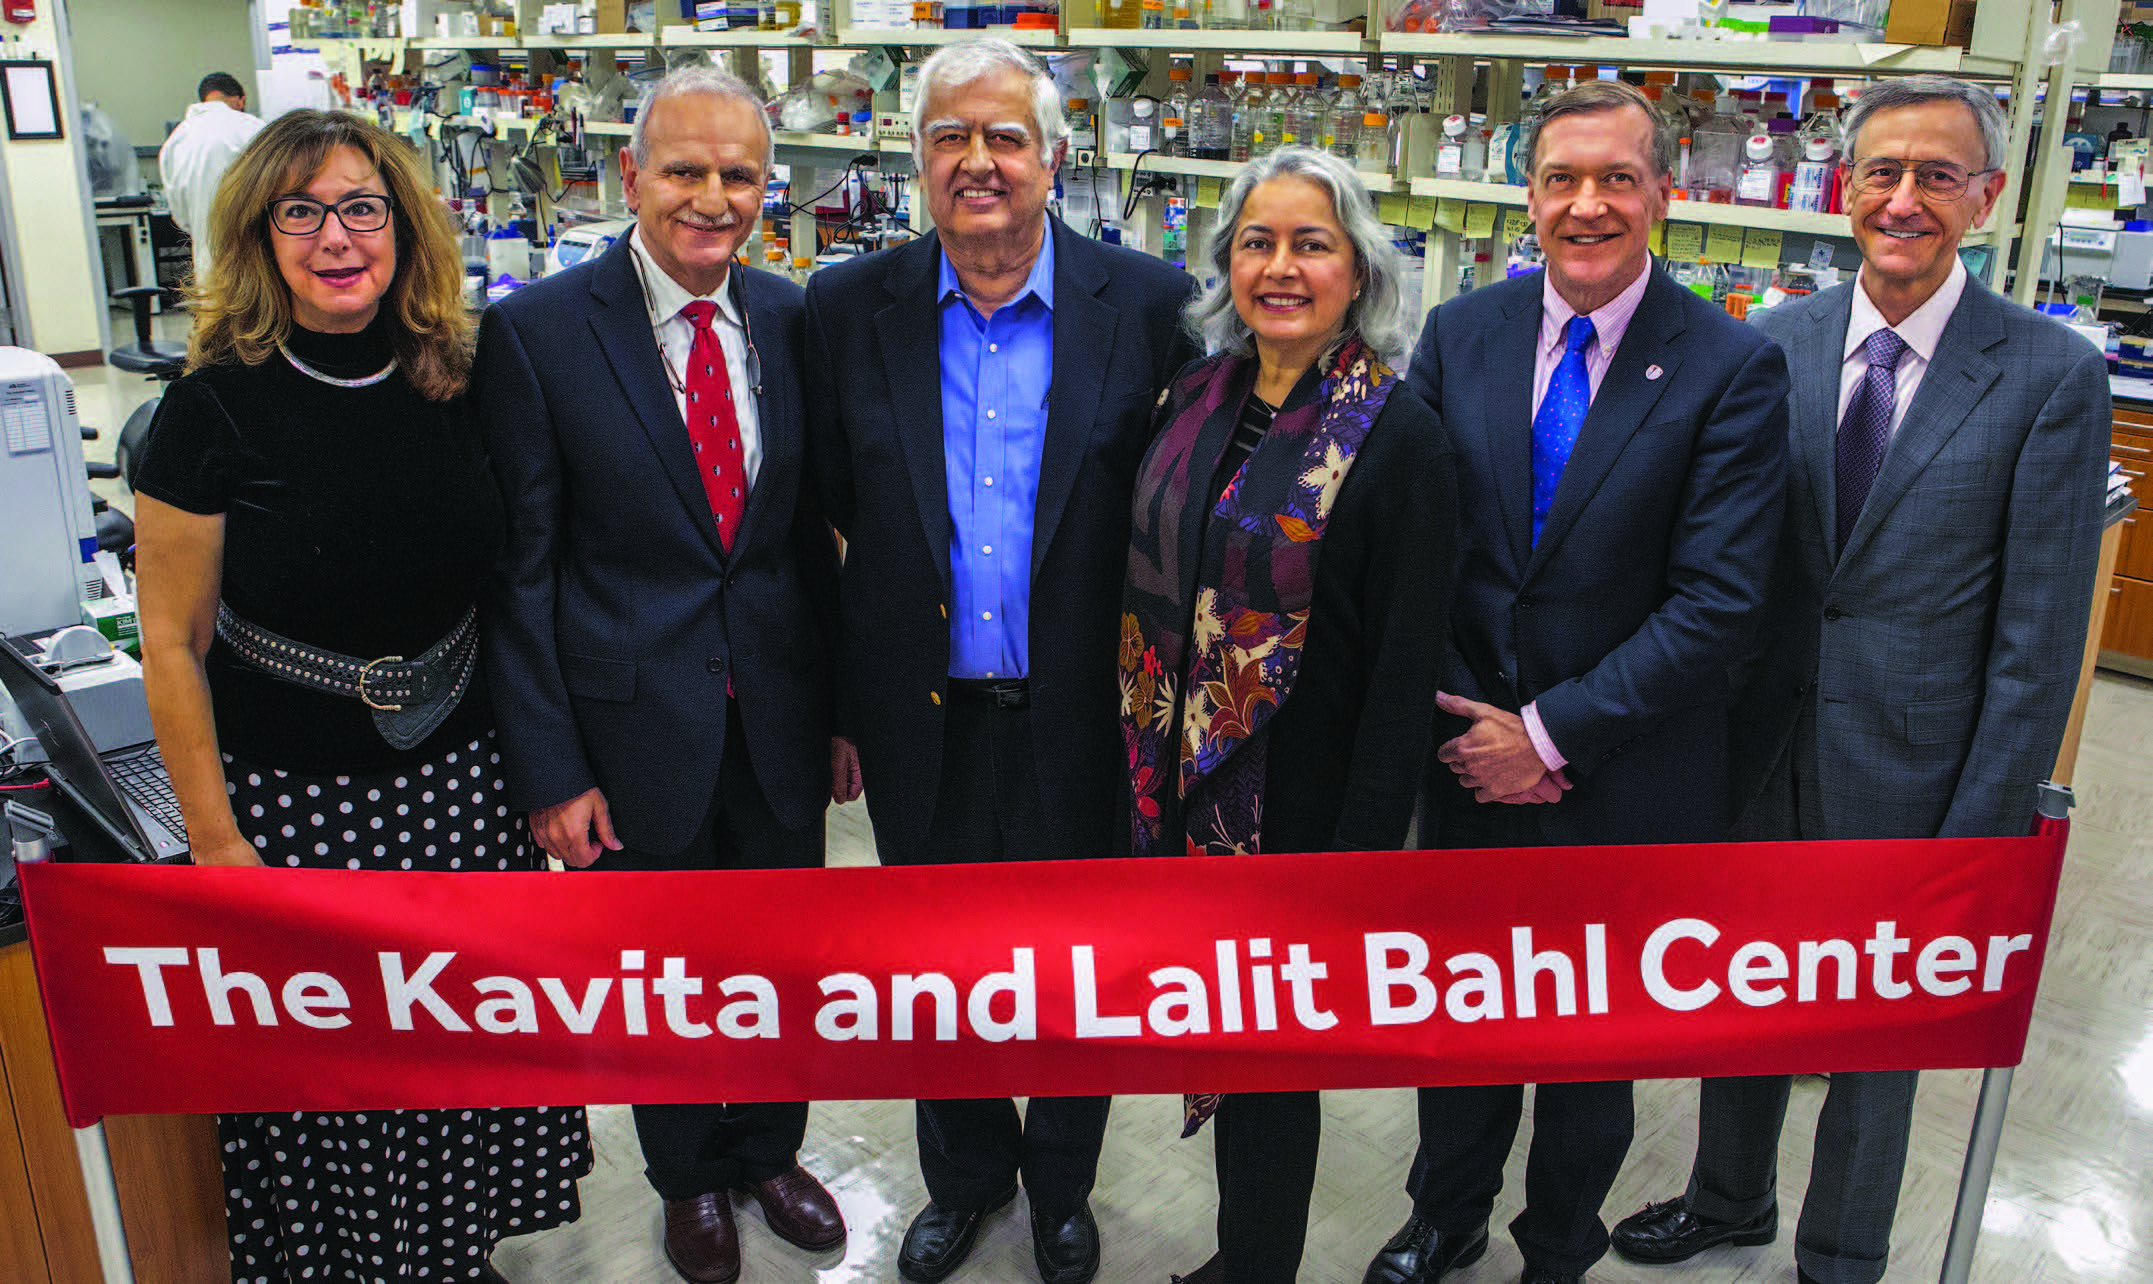 Left: At the Bahl Center unveiling, left to right: Lina Obeid, MD; Hannun; Lalit Bahl; Kavita Bahl; Stony Brook University President Samuel L. Stanley Jr; and Kenneth Kaushansky, MD, Senior Vice President for the Health Sciences and Dean of the School of Medicine.